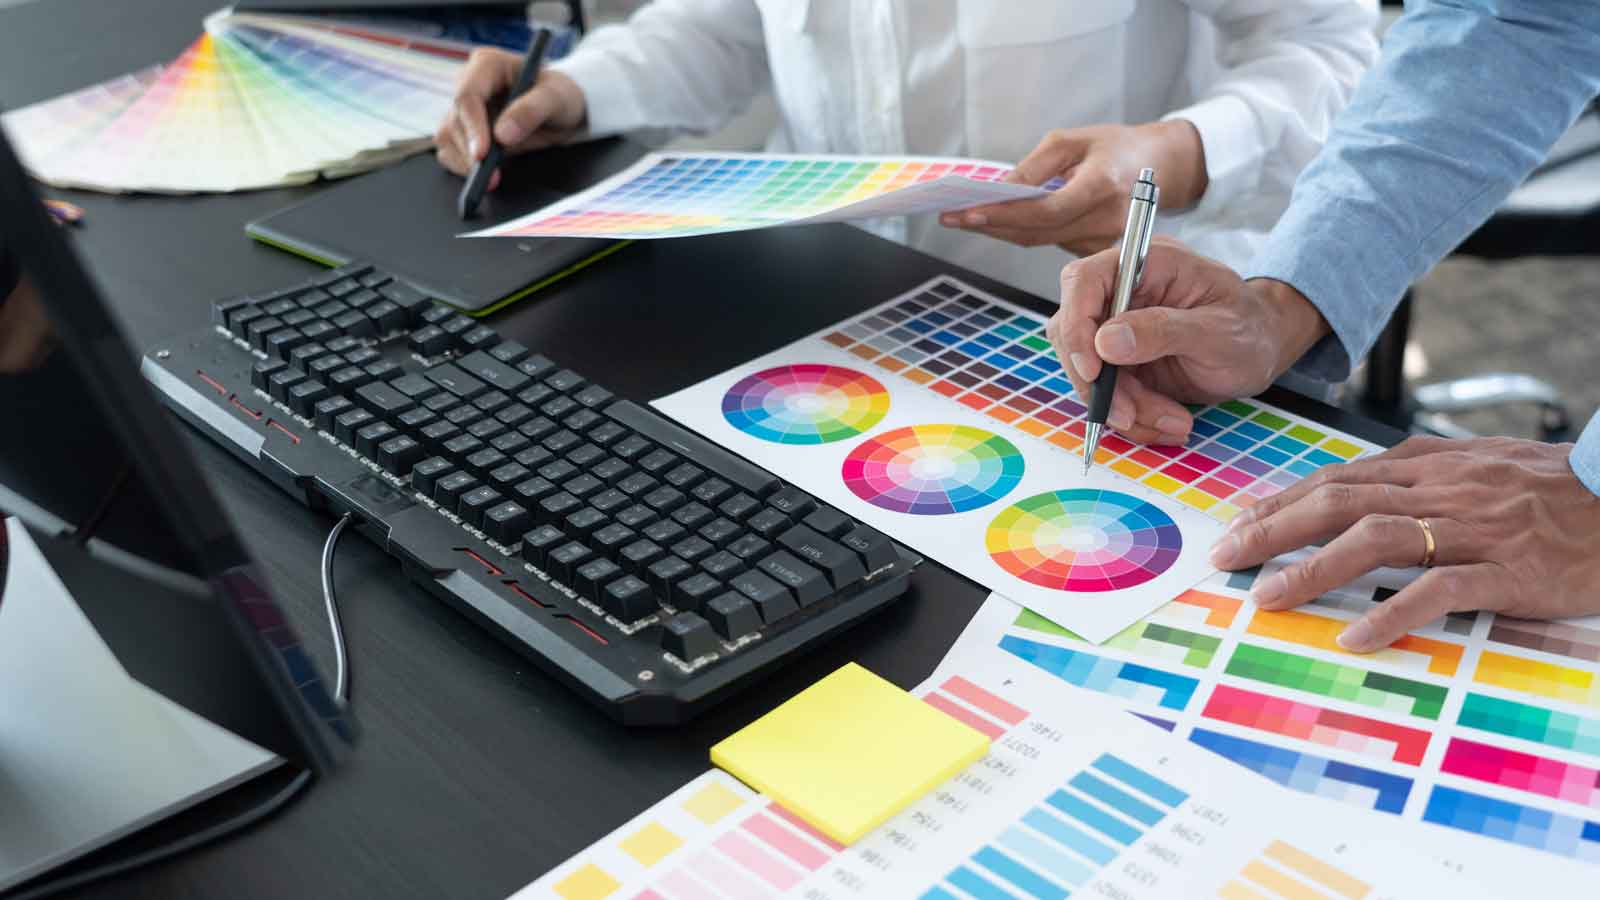 in raise design studio why you want a cugraphic designer team working web design using color swatches editing artwork using tablet stylus desks creative office